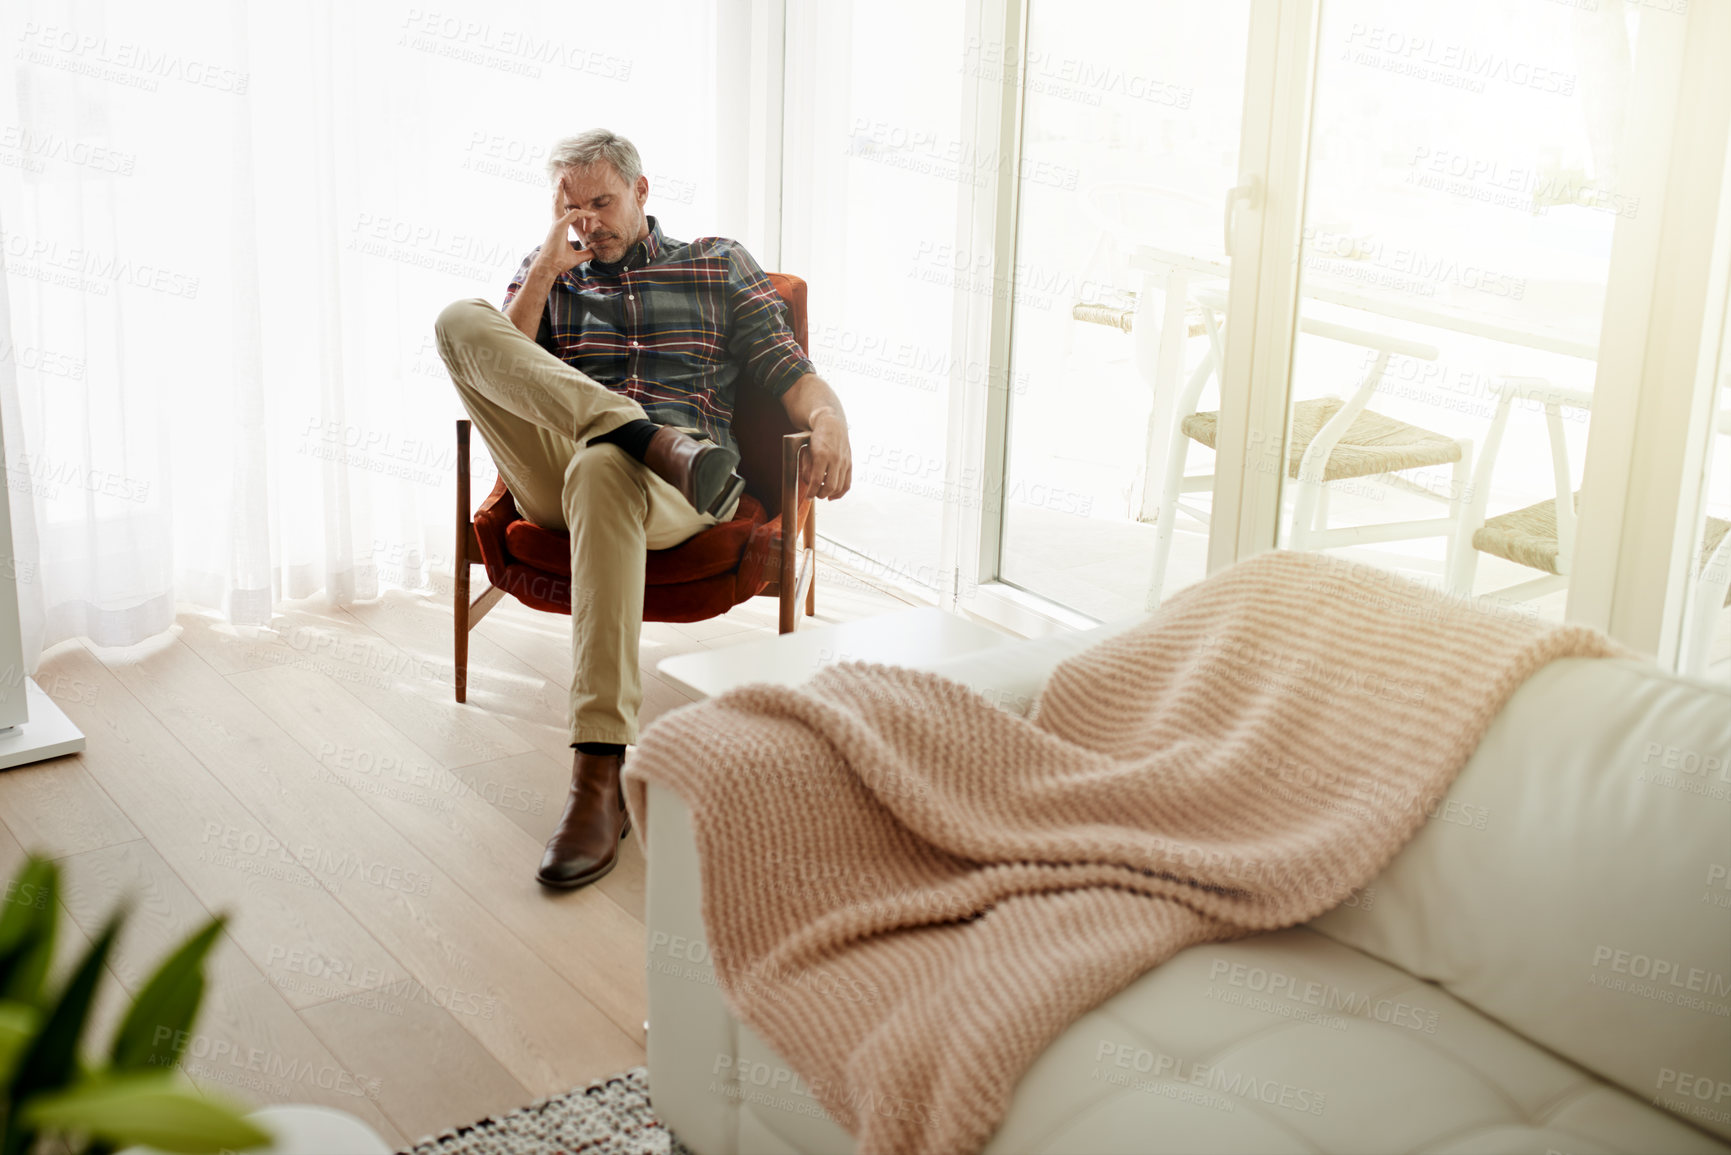 Buy stock photo Shot of a mature man sitting on a chair with his eyes closed at home